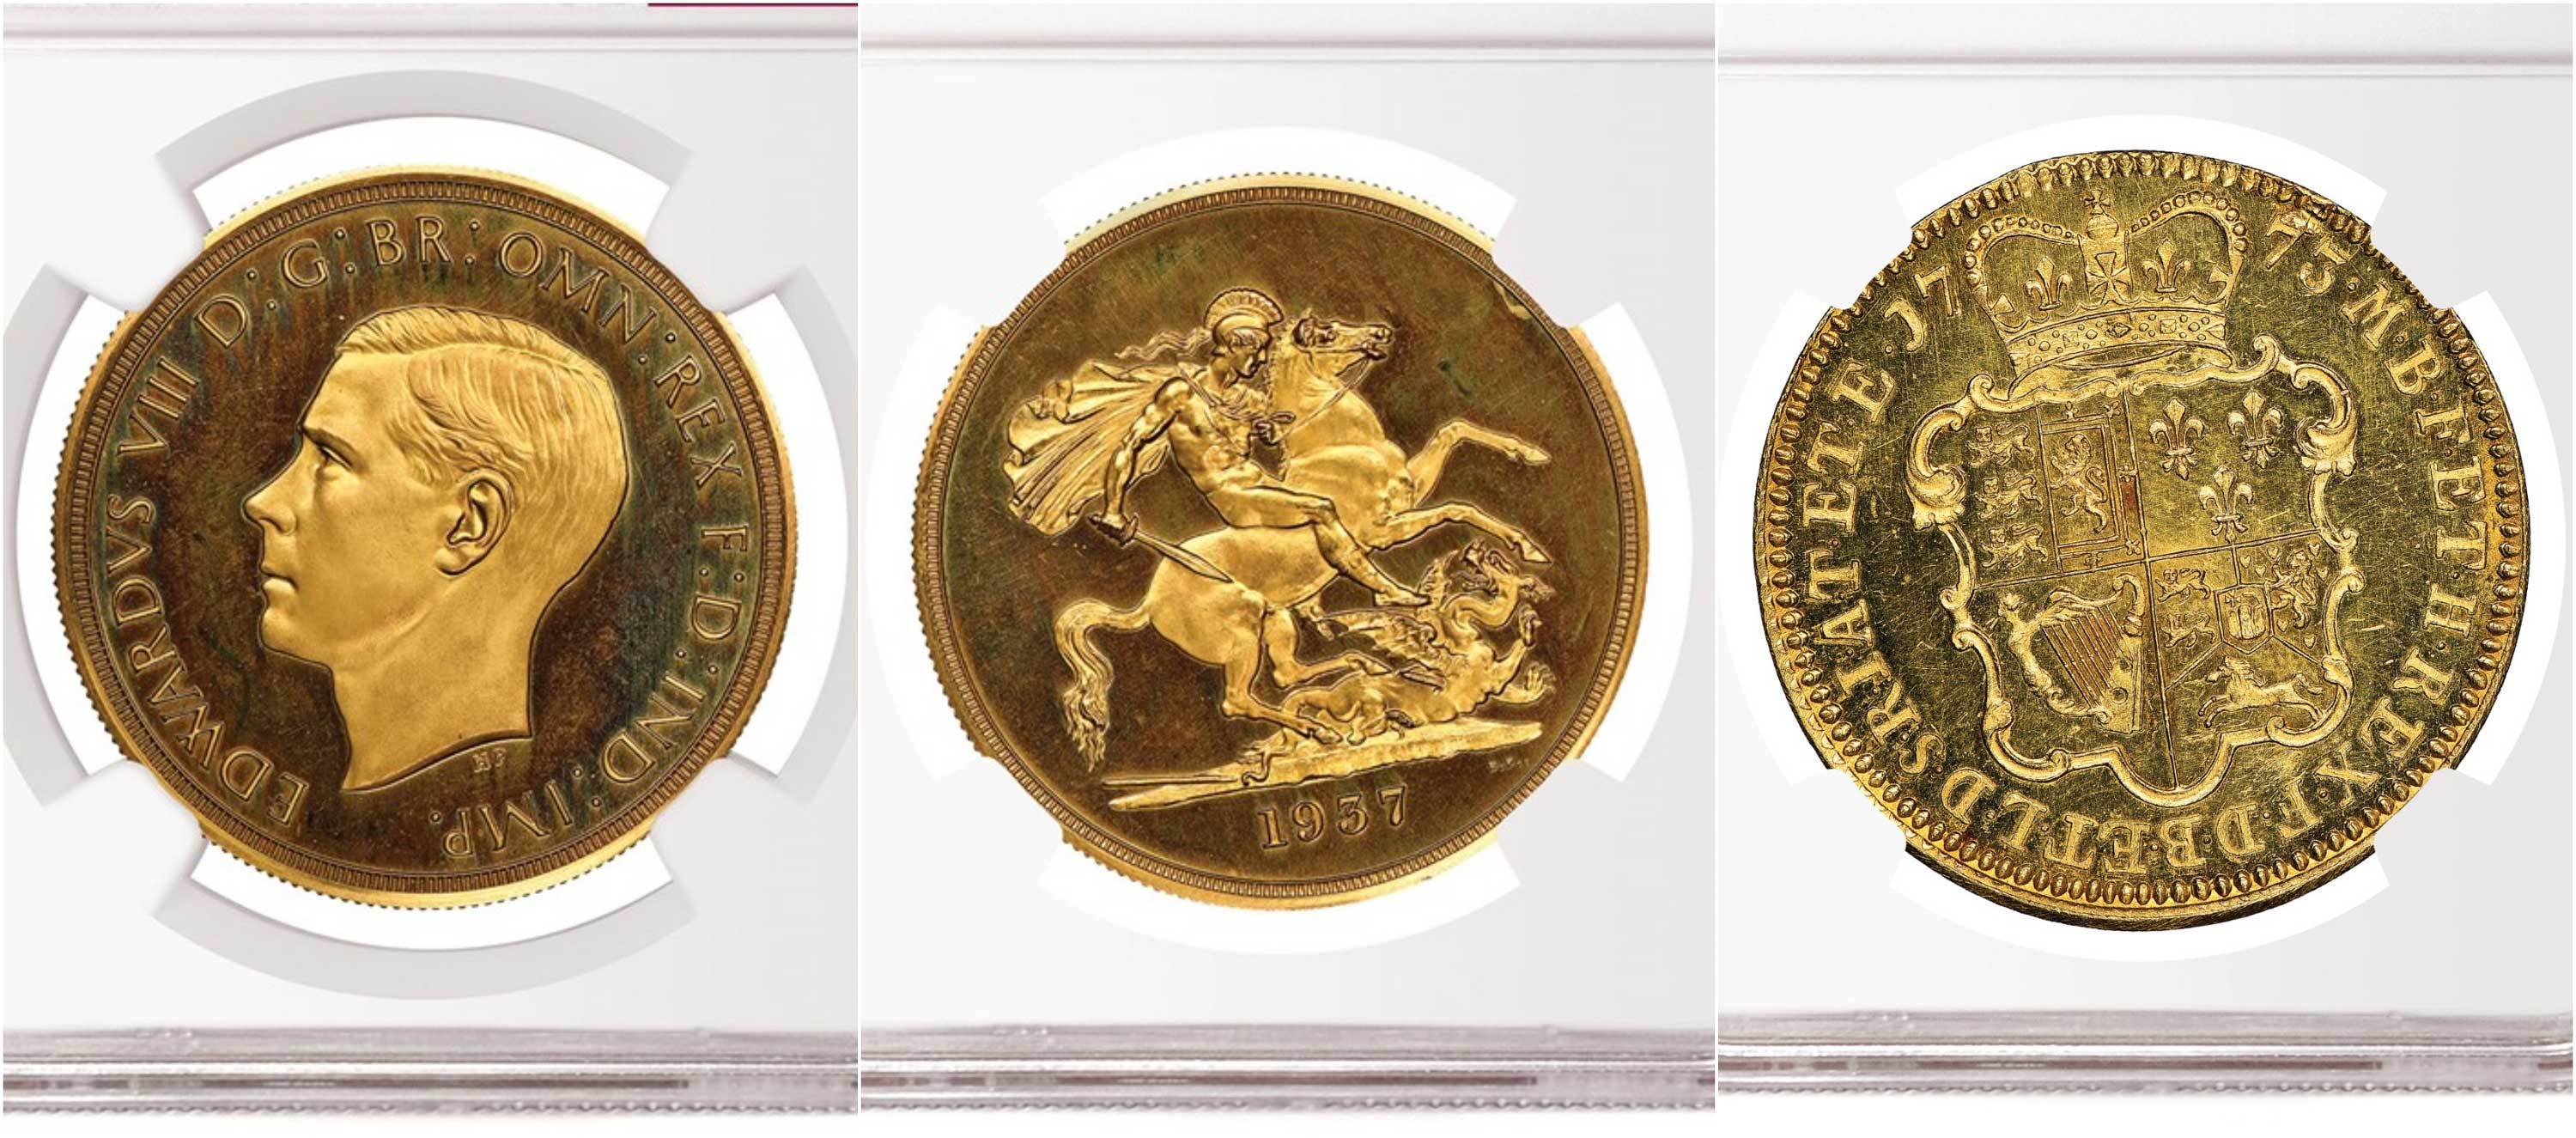 thumbnail image for NGC-certified Edward VIII Gold 5 Sovereign Realizes $2.28 Million, Smashing the Record for a British Coin Sold at Auction